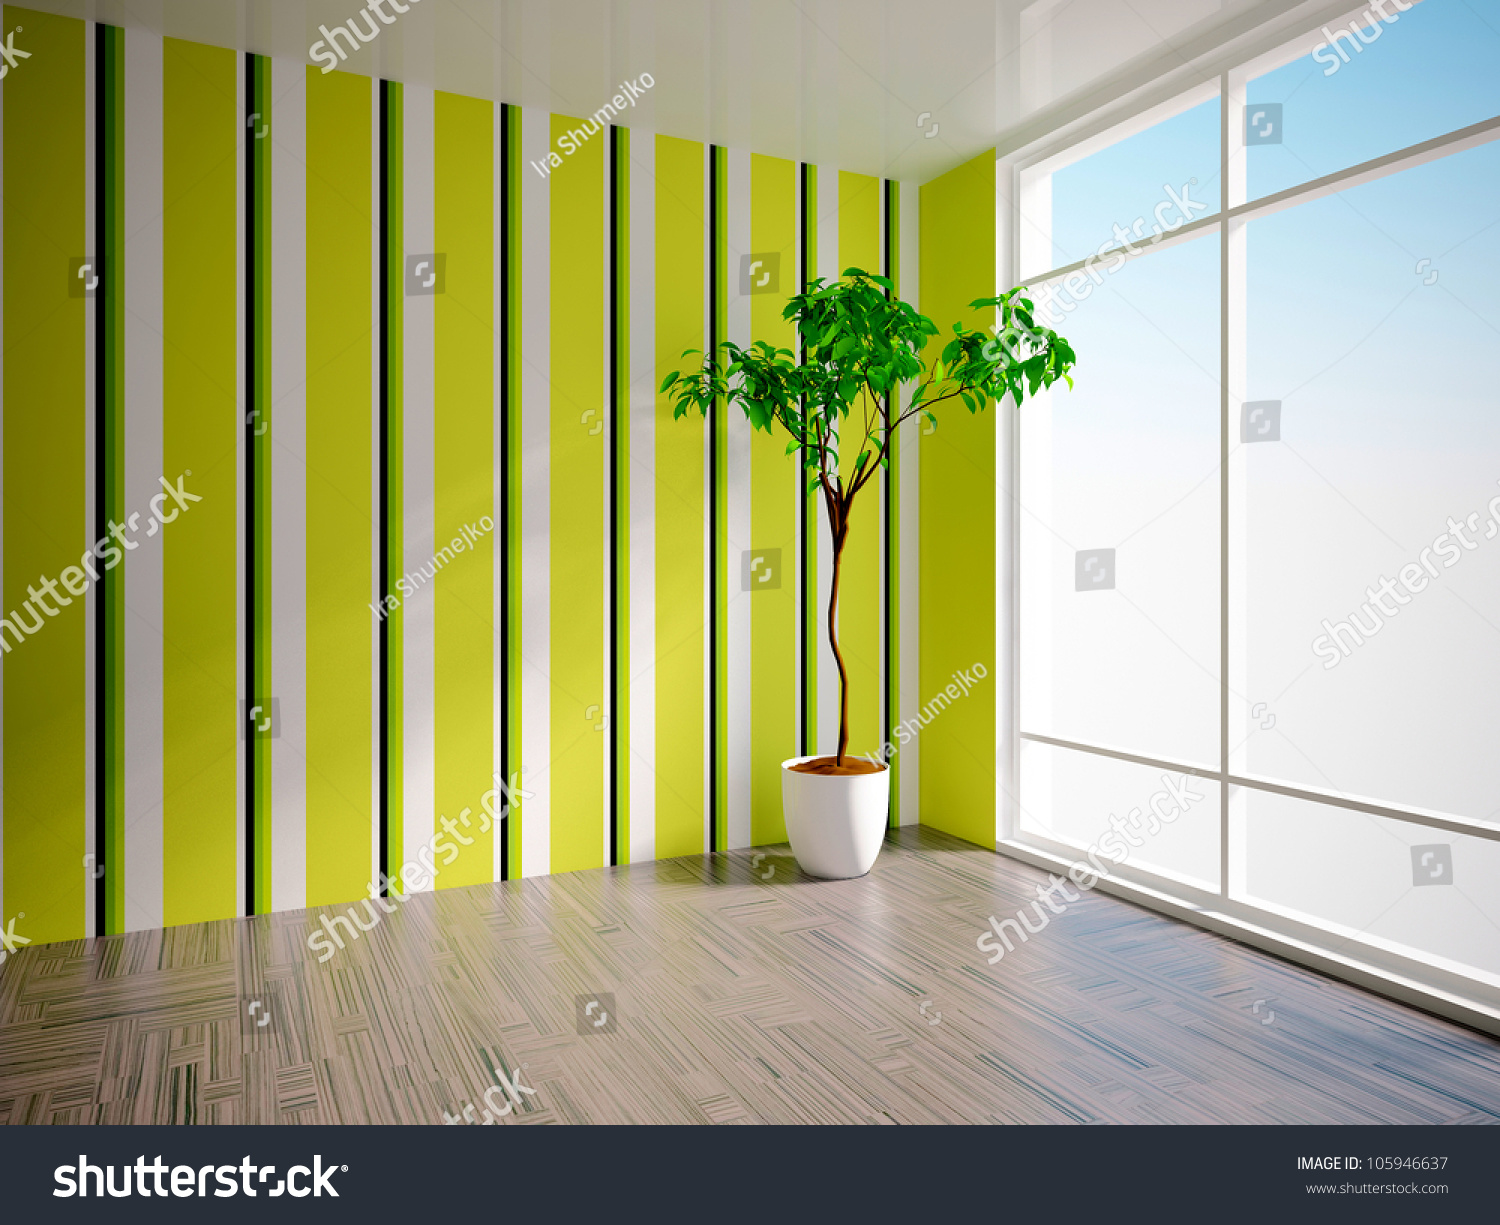 Empty Interior Tree Striped Wall Stock Illustration 105946637 ...